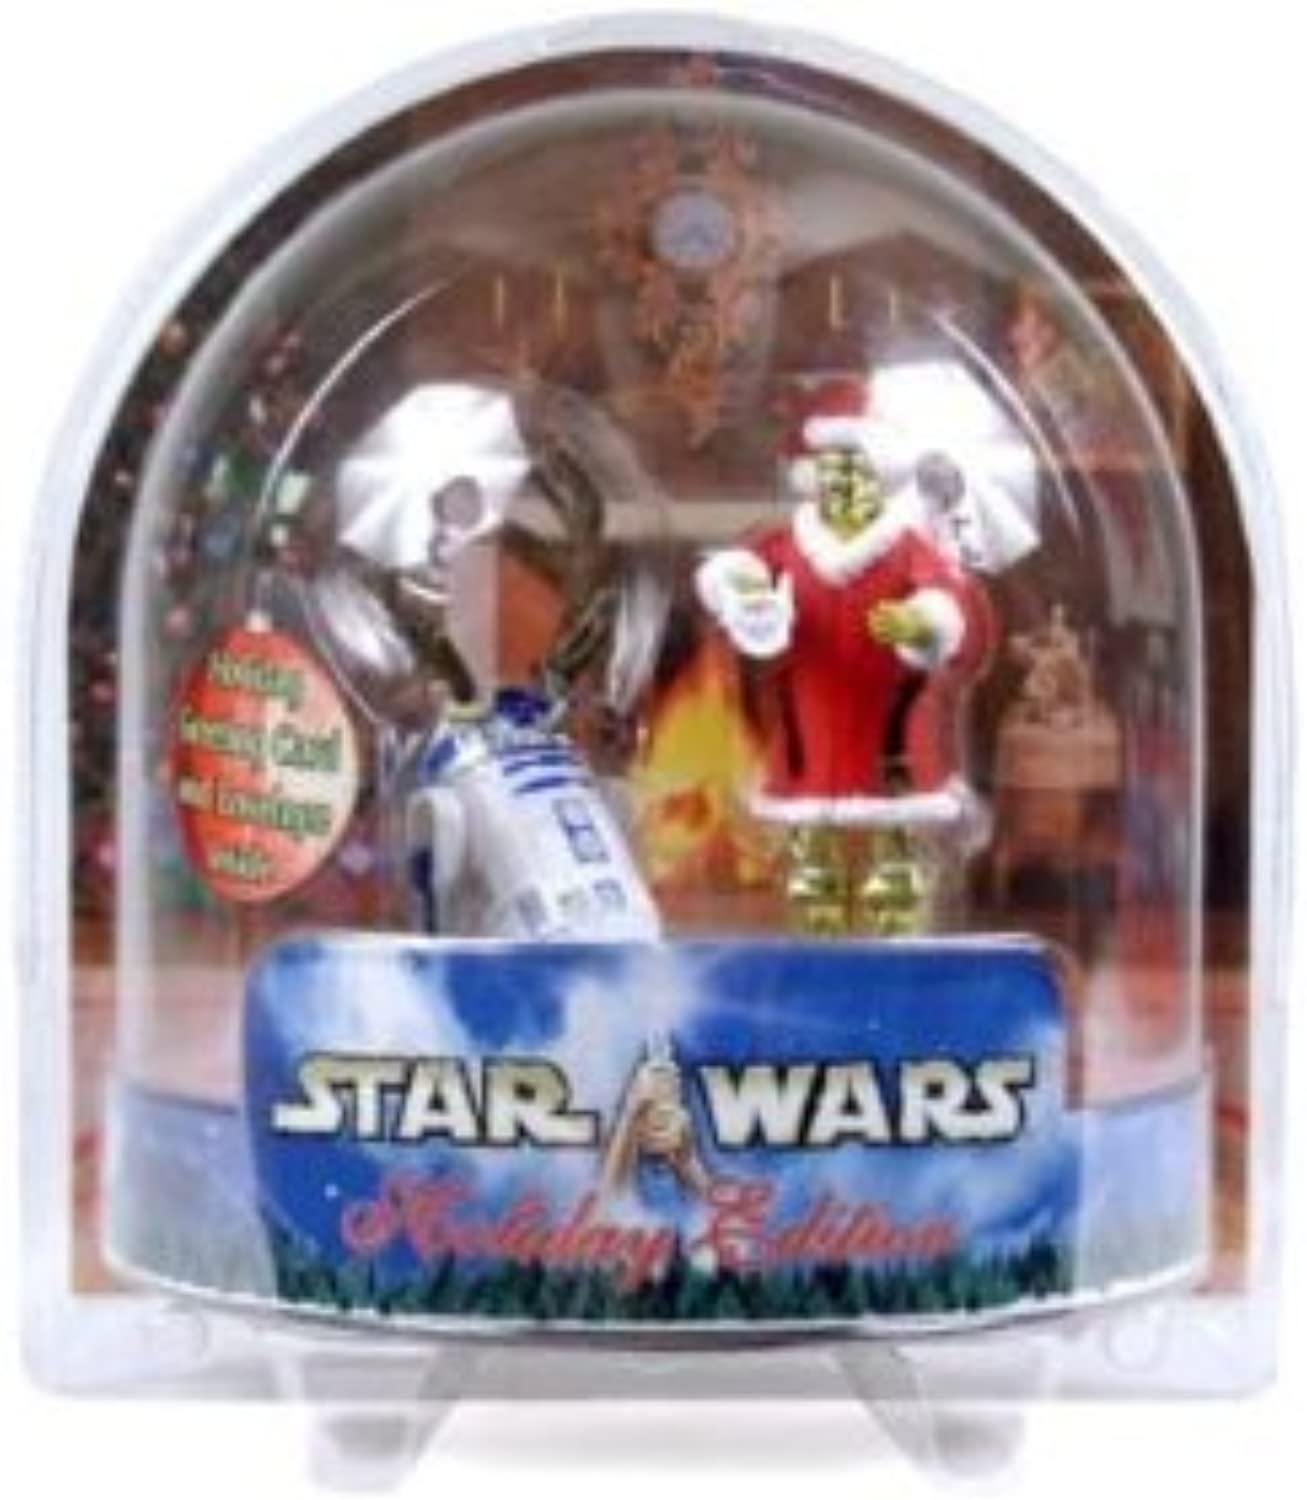 Star Wars Holiday Edition R2D2 and C3PO